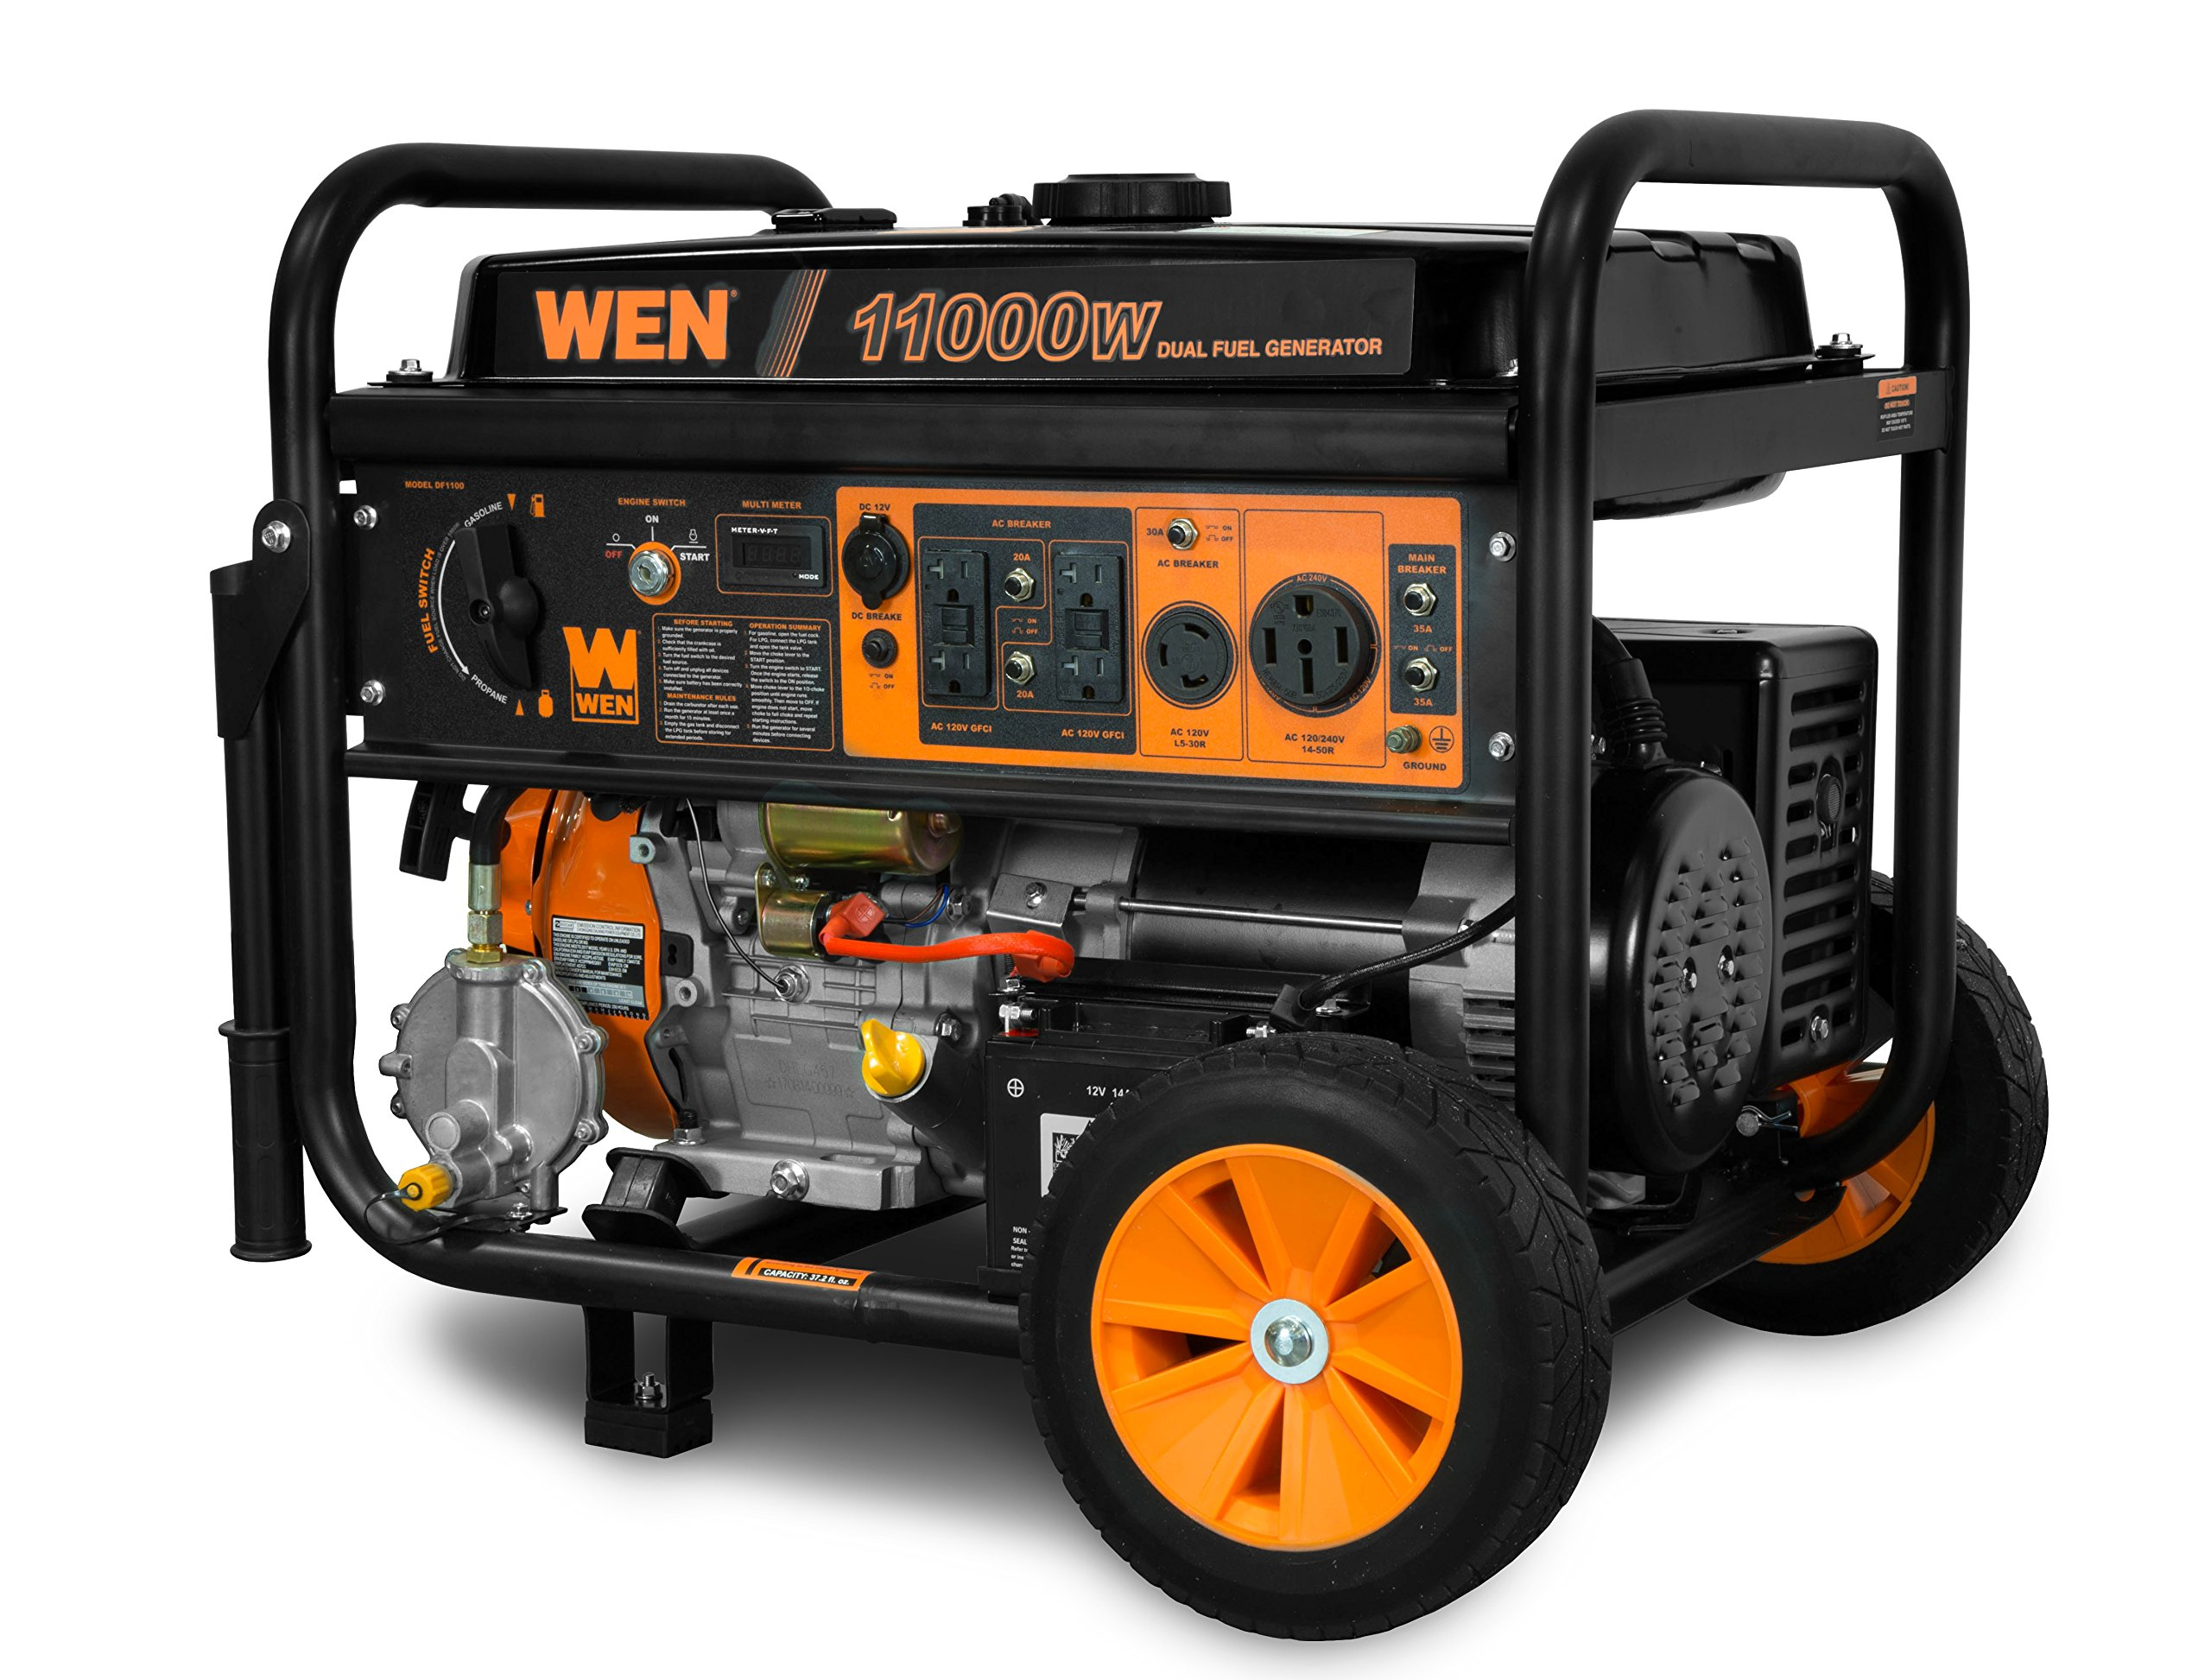 WEN DF1100 11,000-Watt 120V/240V Dual Fuel Portable Generator With Wheel Kit And Electric Start –